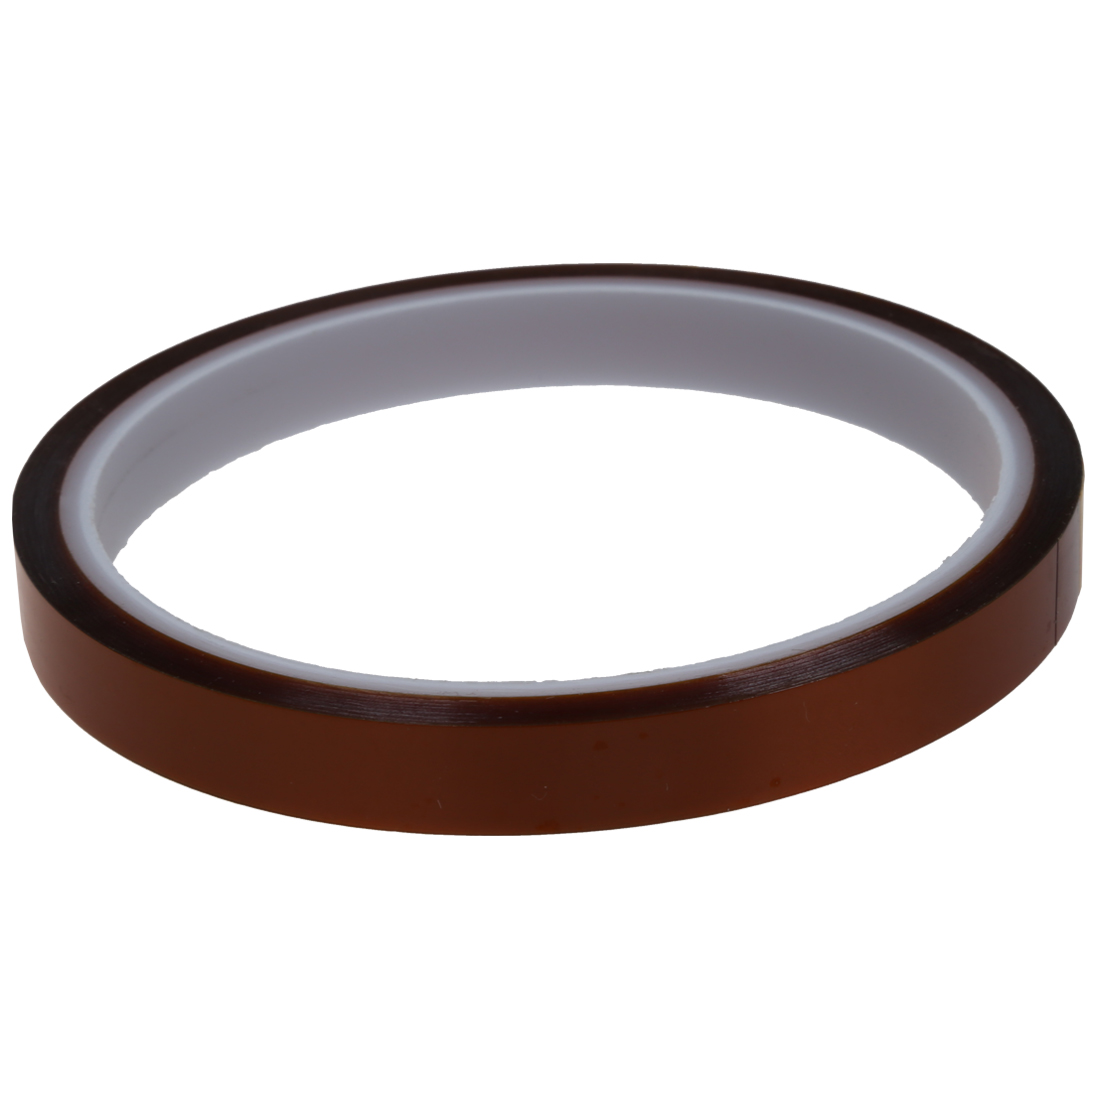 10mm 33m 100ft Kapton Tape High Temperature Heat Resistant Polyimide BGA 55mm x 33m 100ft kapton tape high temperature heat resistant polyimide fast ship